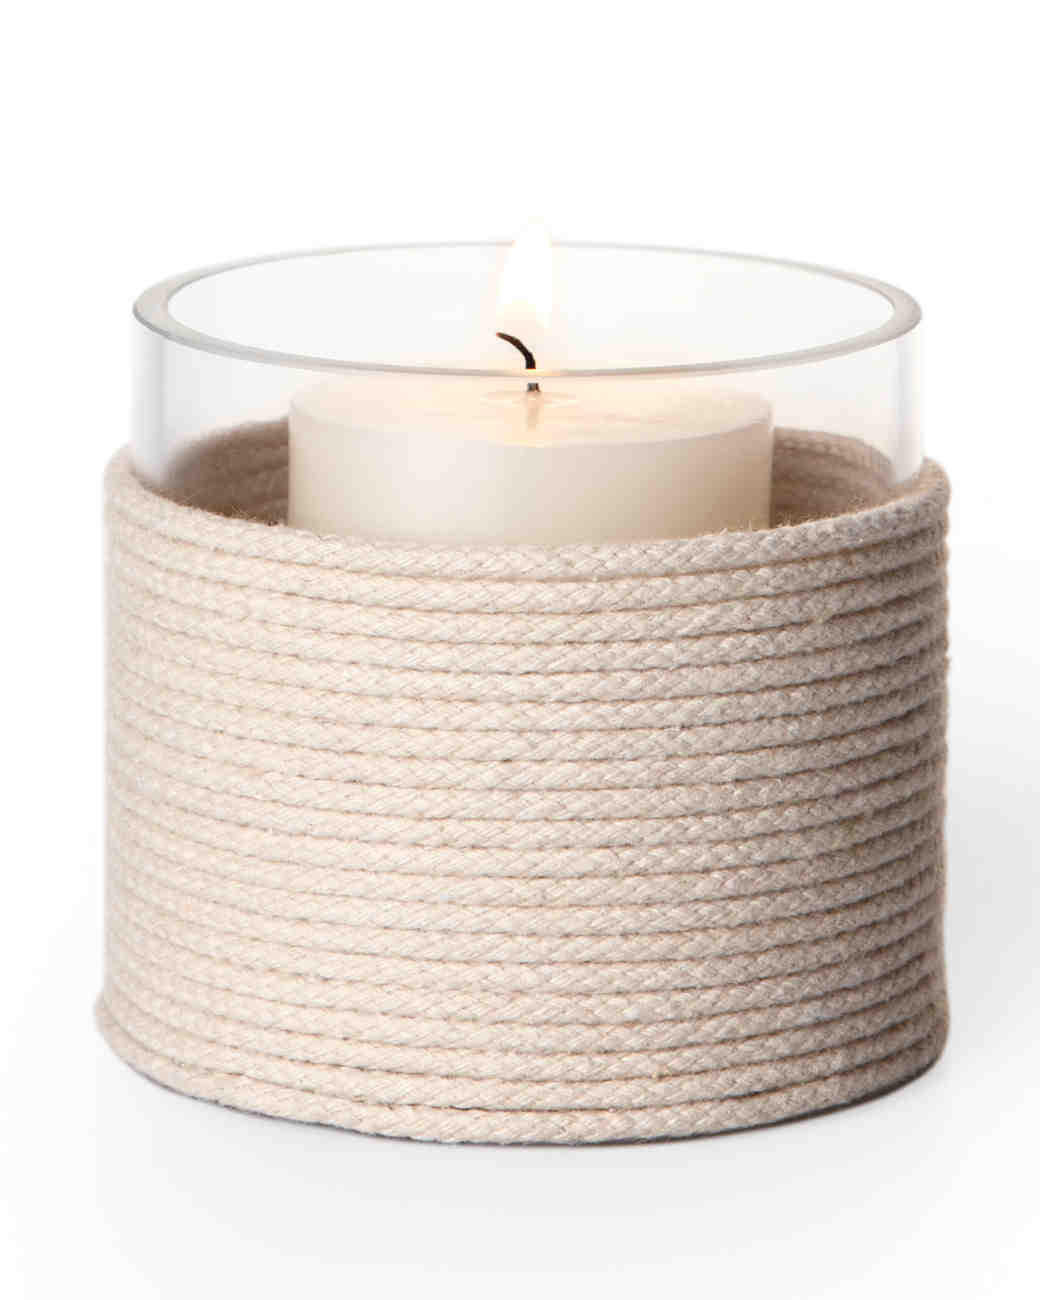 gillian-william-rope-candle-holder-002-mwd110020.jpg